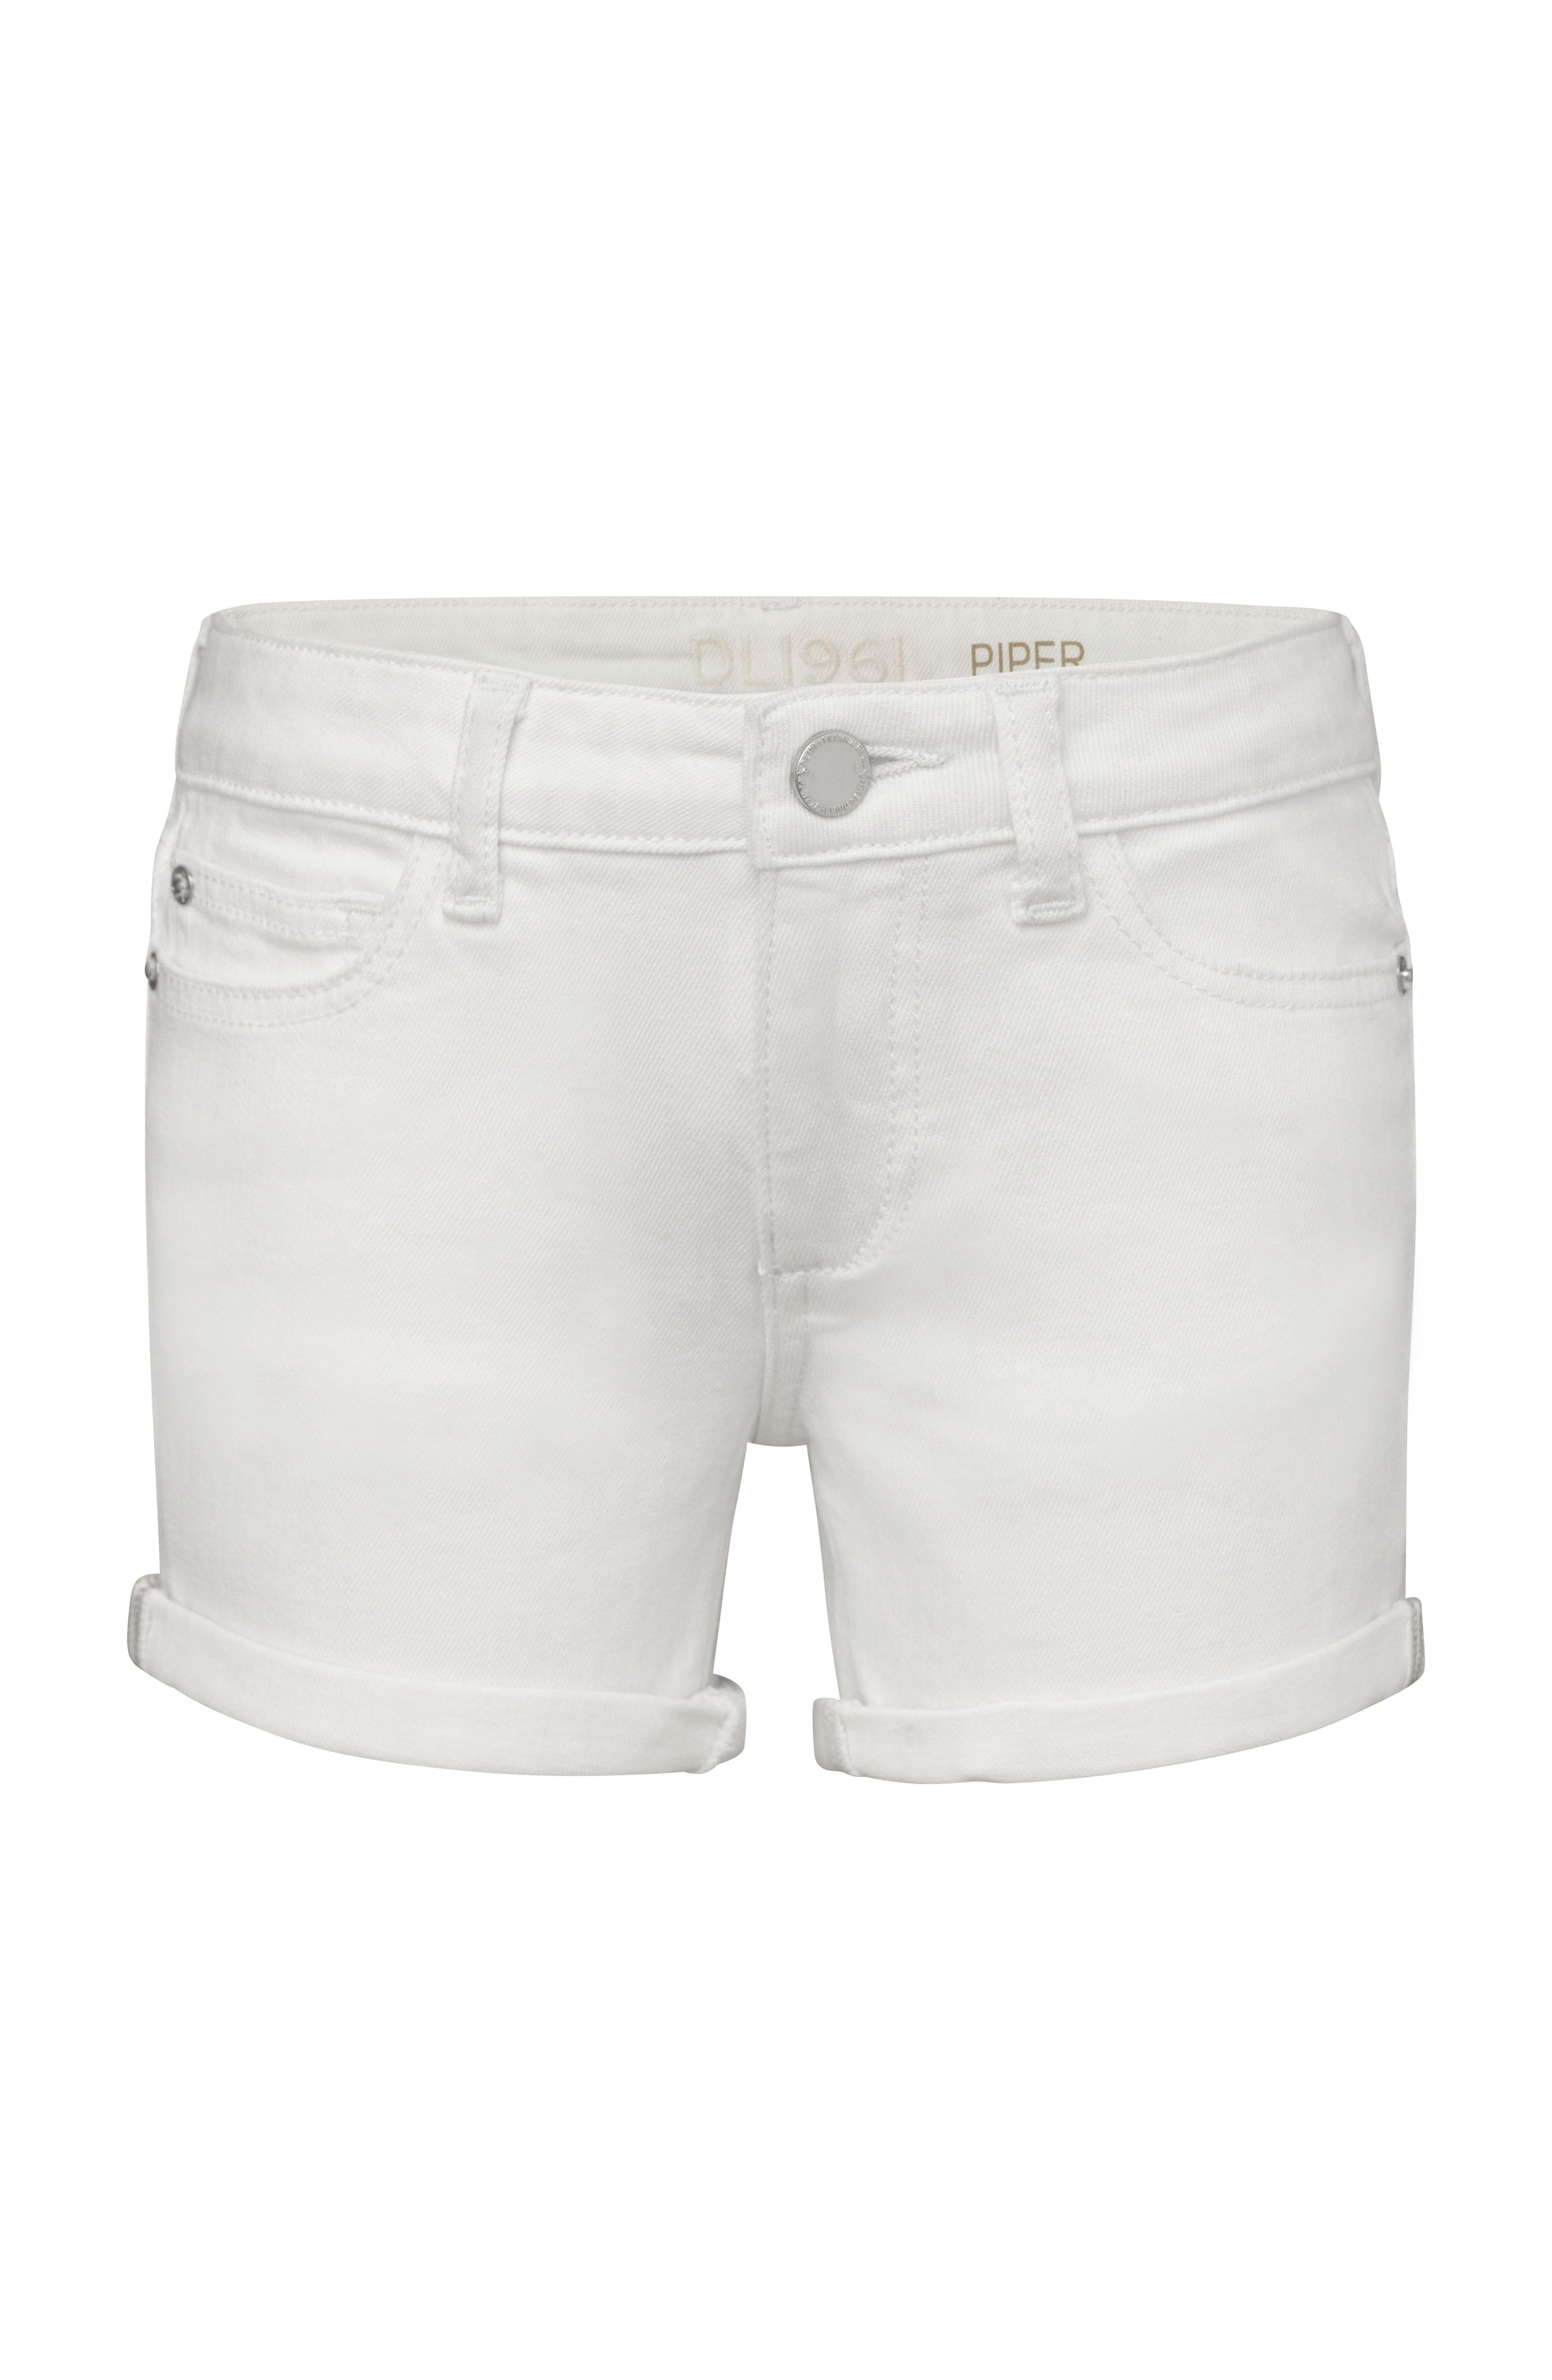 DL1961 Piper White Cuffed Denim